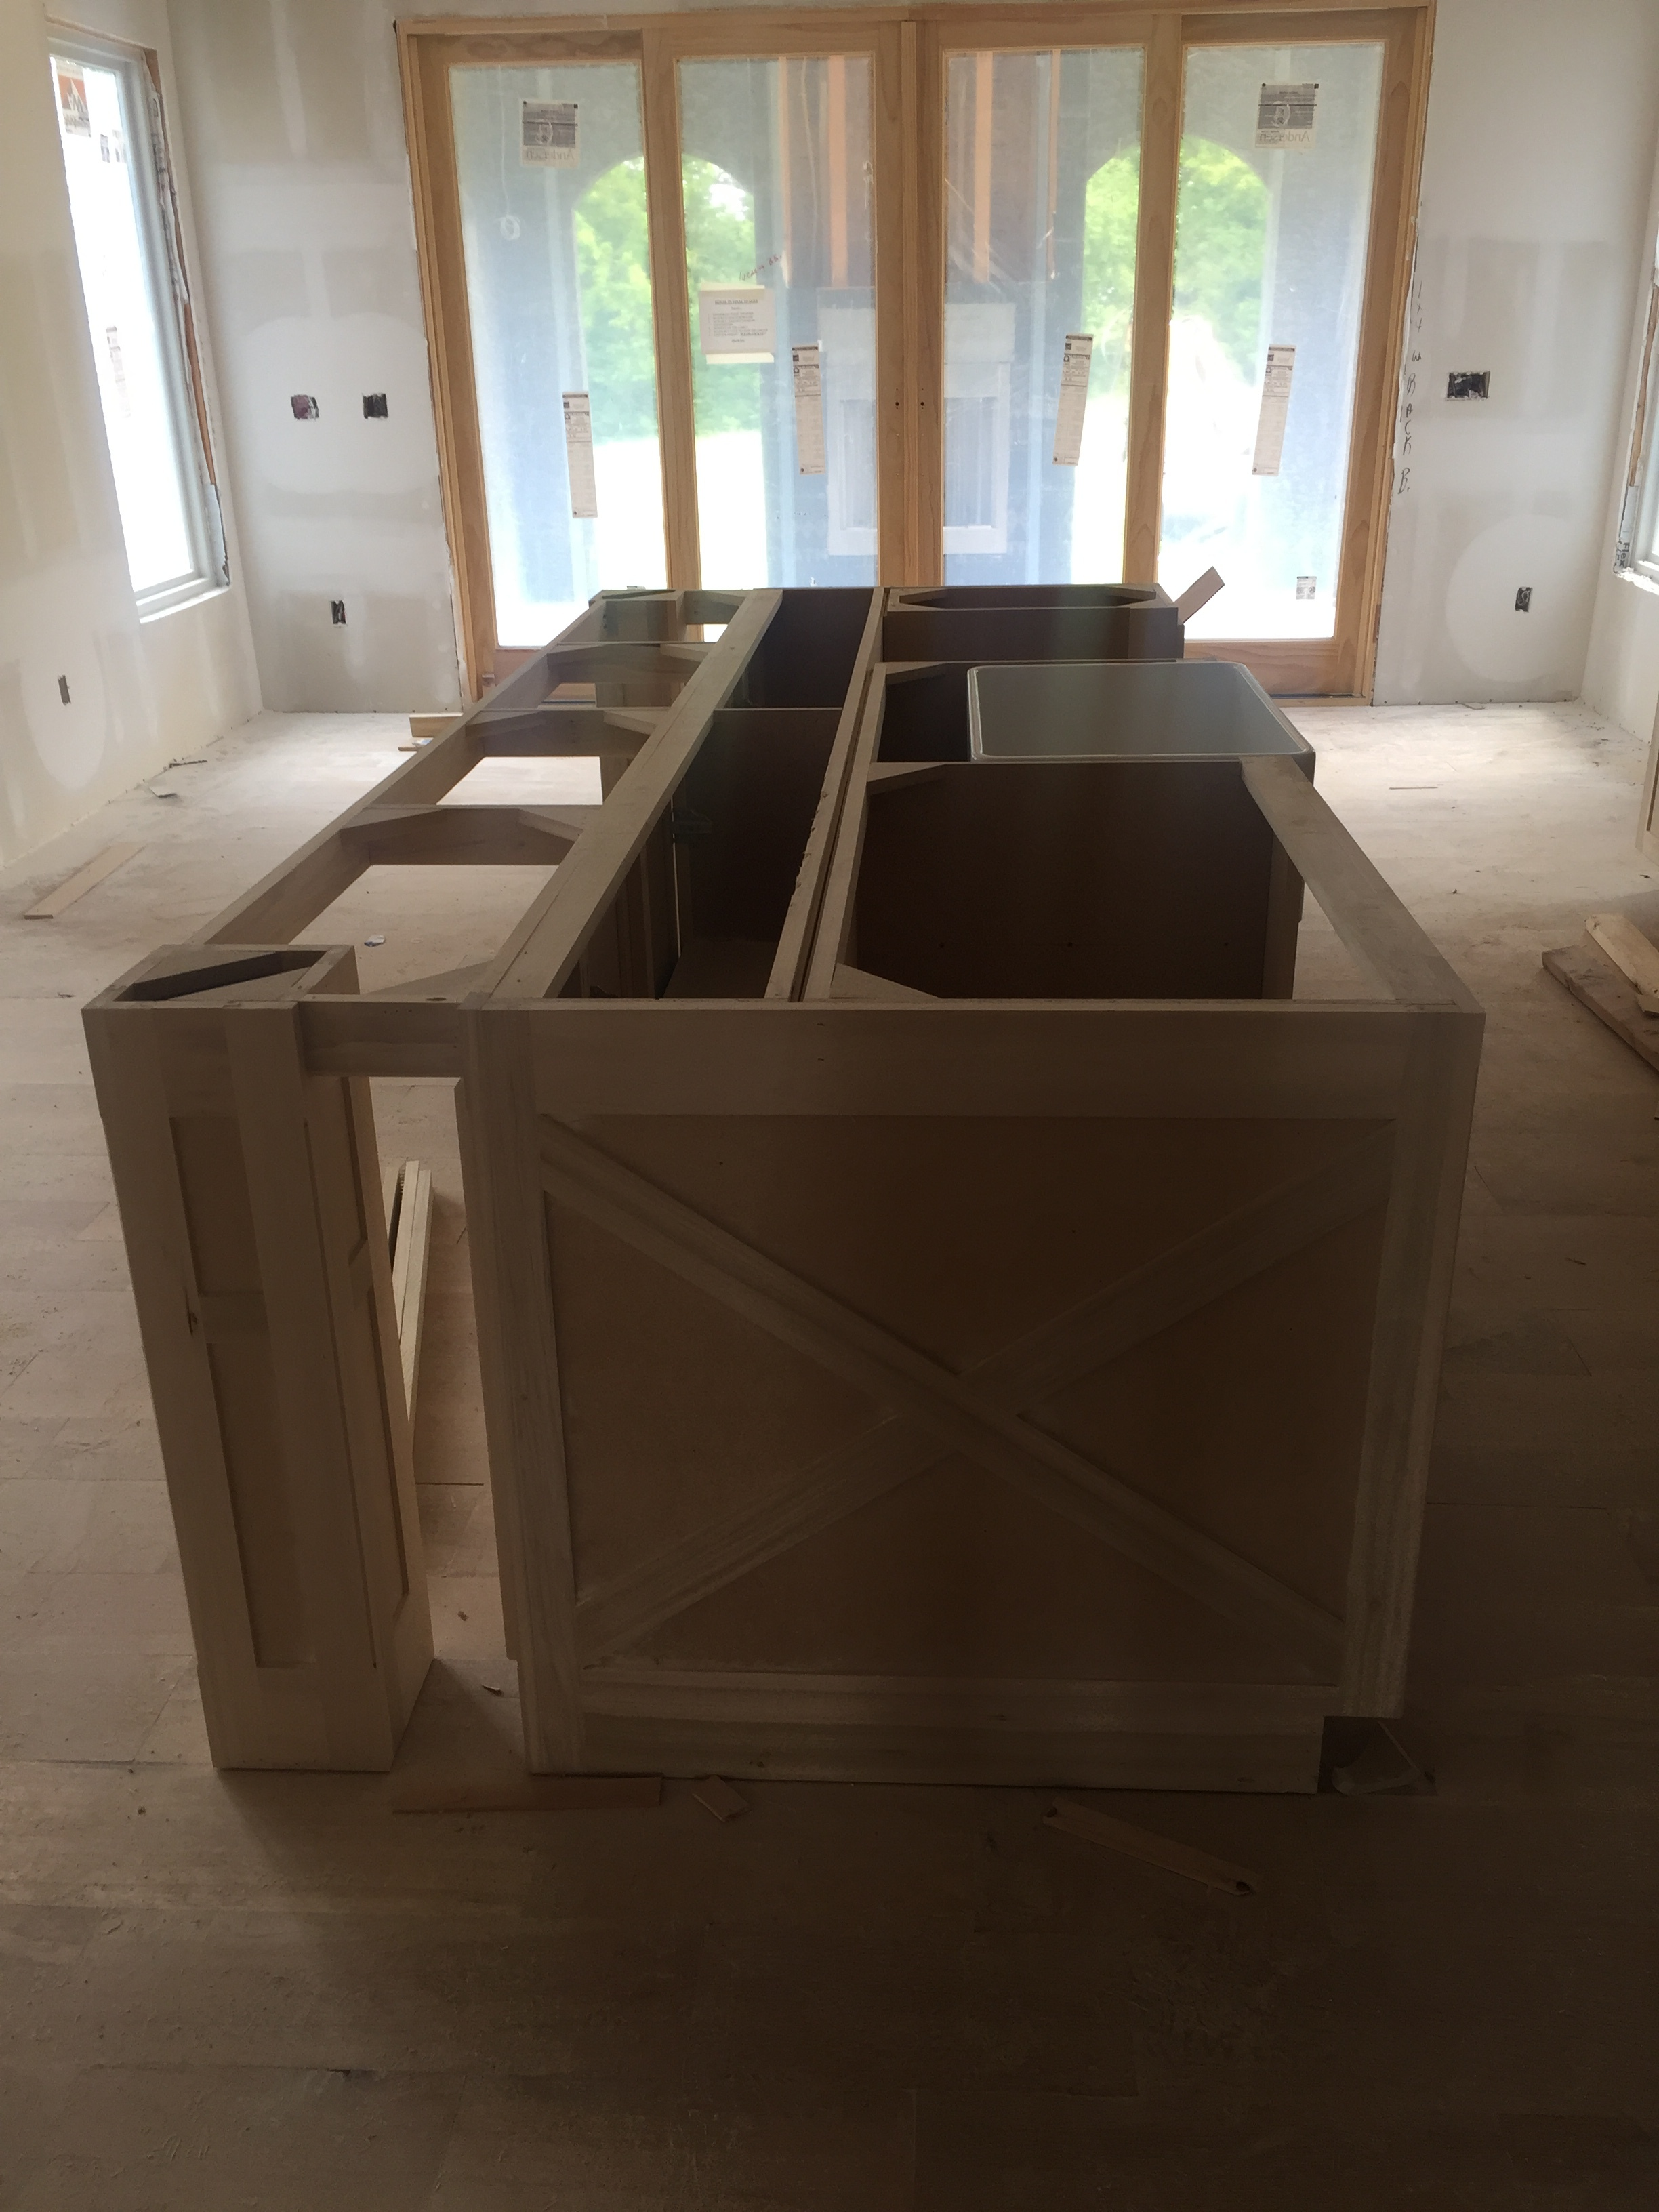 """Carried our """"x"""" pattern from the guest bathroom vanity into the kitchen on our island"""